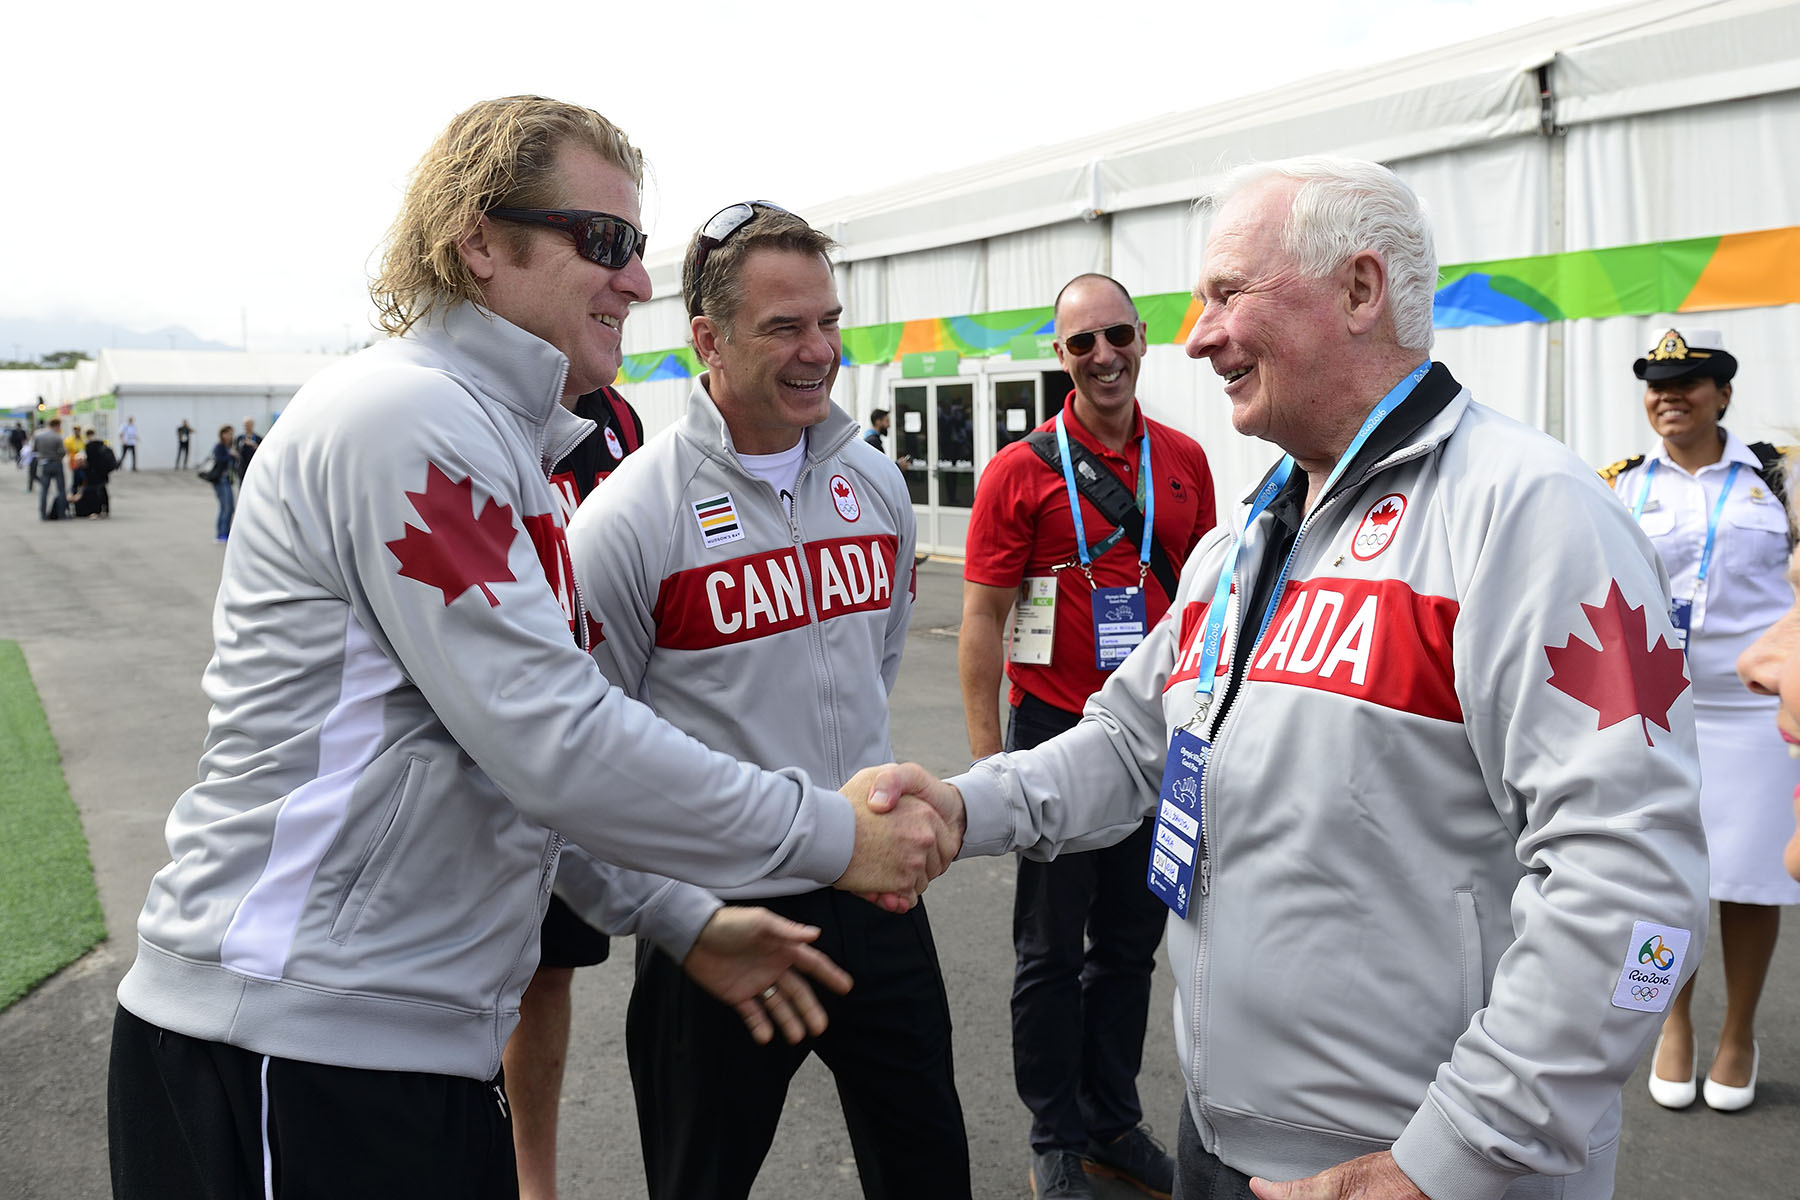 On August 4, 2016, Mr. Curt Harnett, Team Canada's Chef de Mission for the Rio Olympic Games, welcomed Their Excellencies to the Athletes' Village.